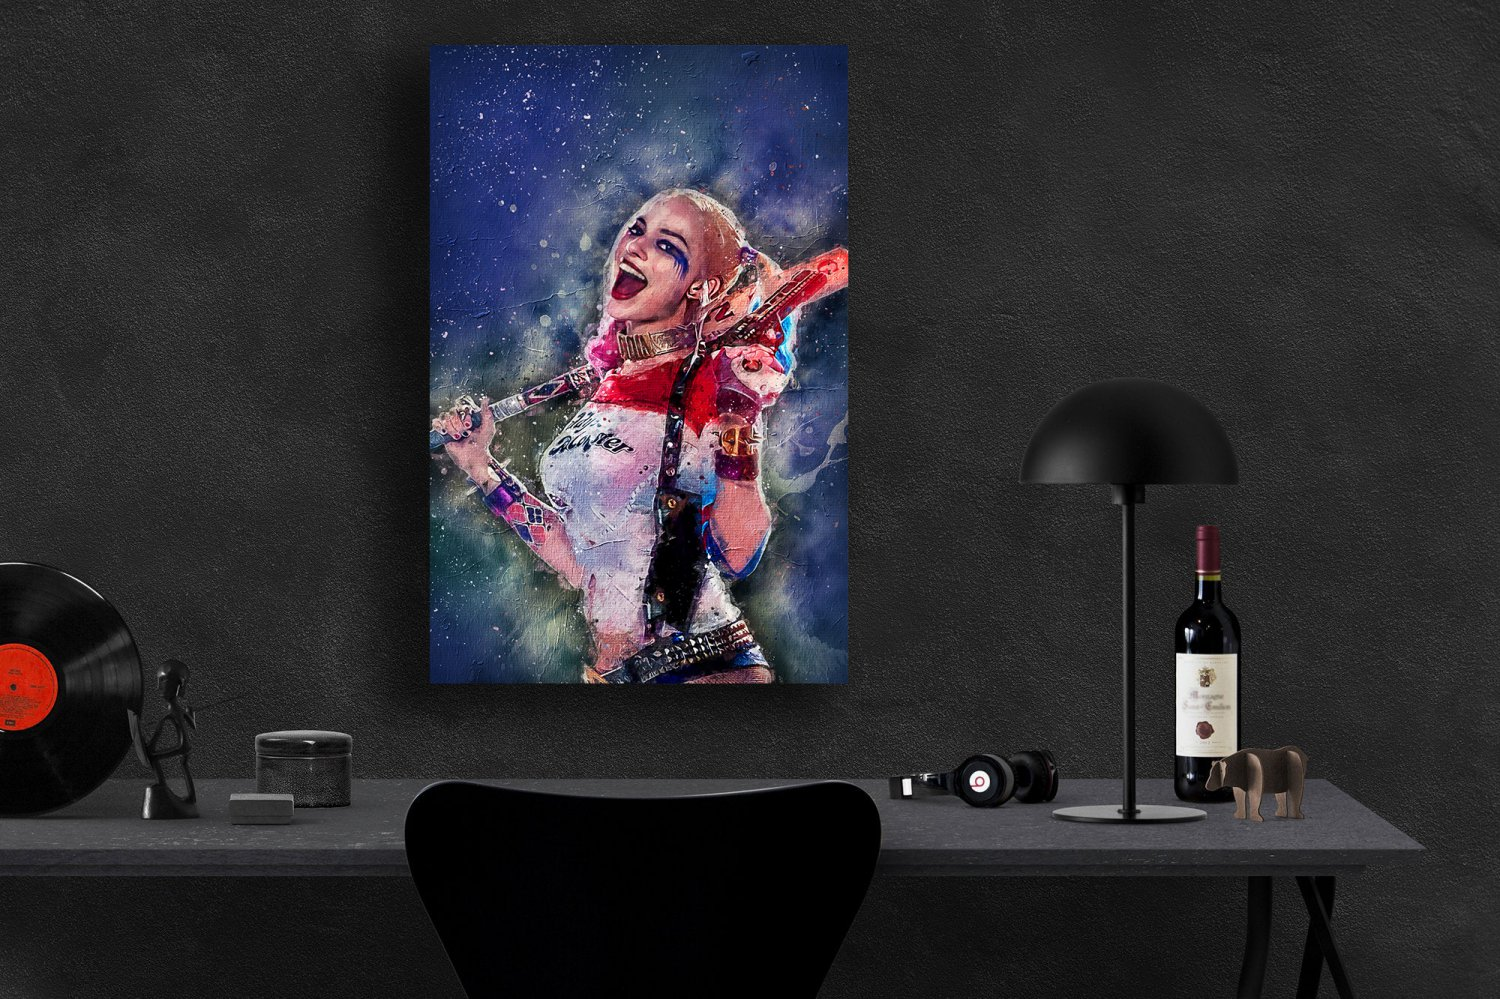 Harley Quinn, Margot Robbie, Birds of Prey   24x35 inches Canvas Print